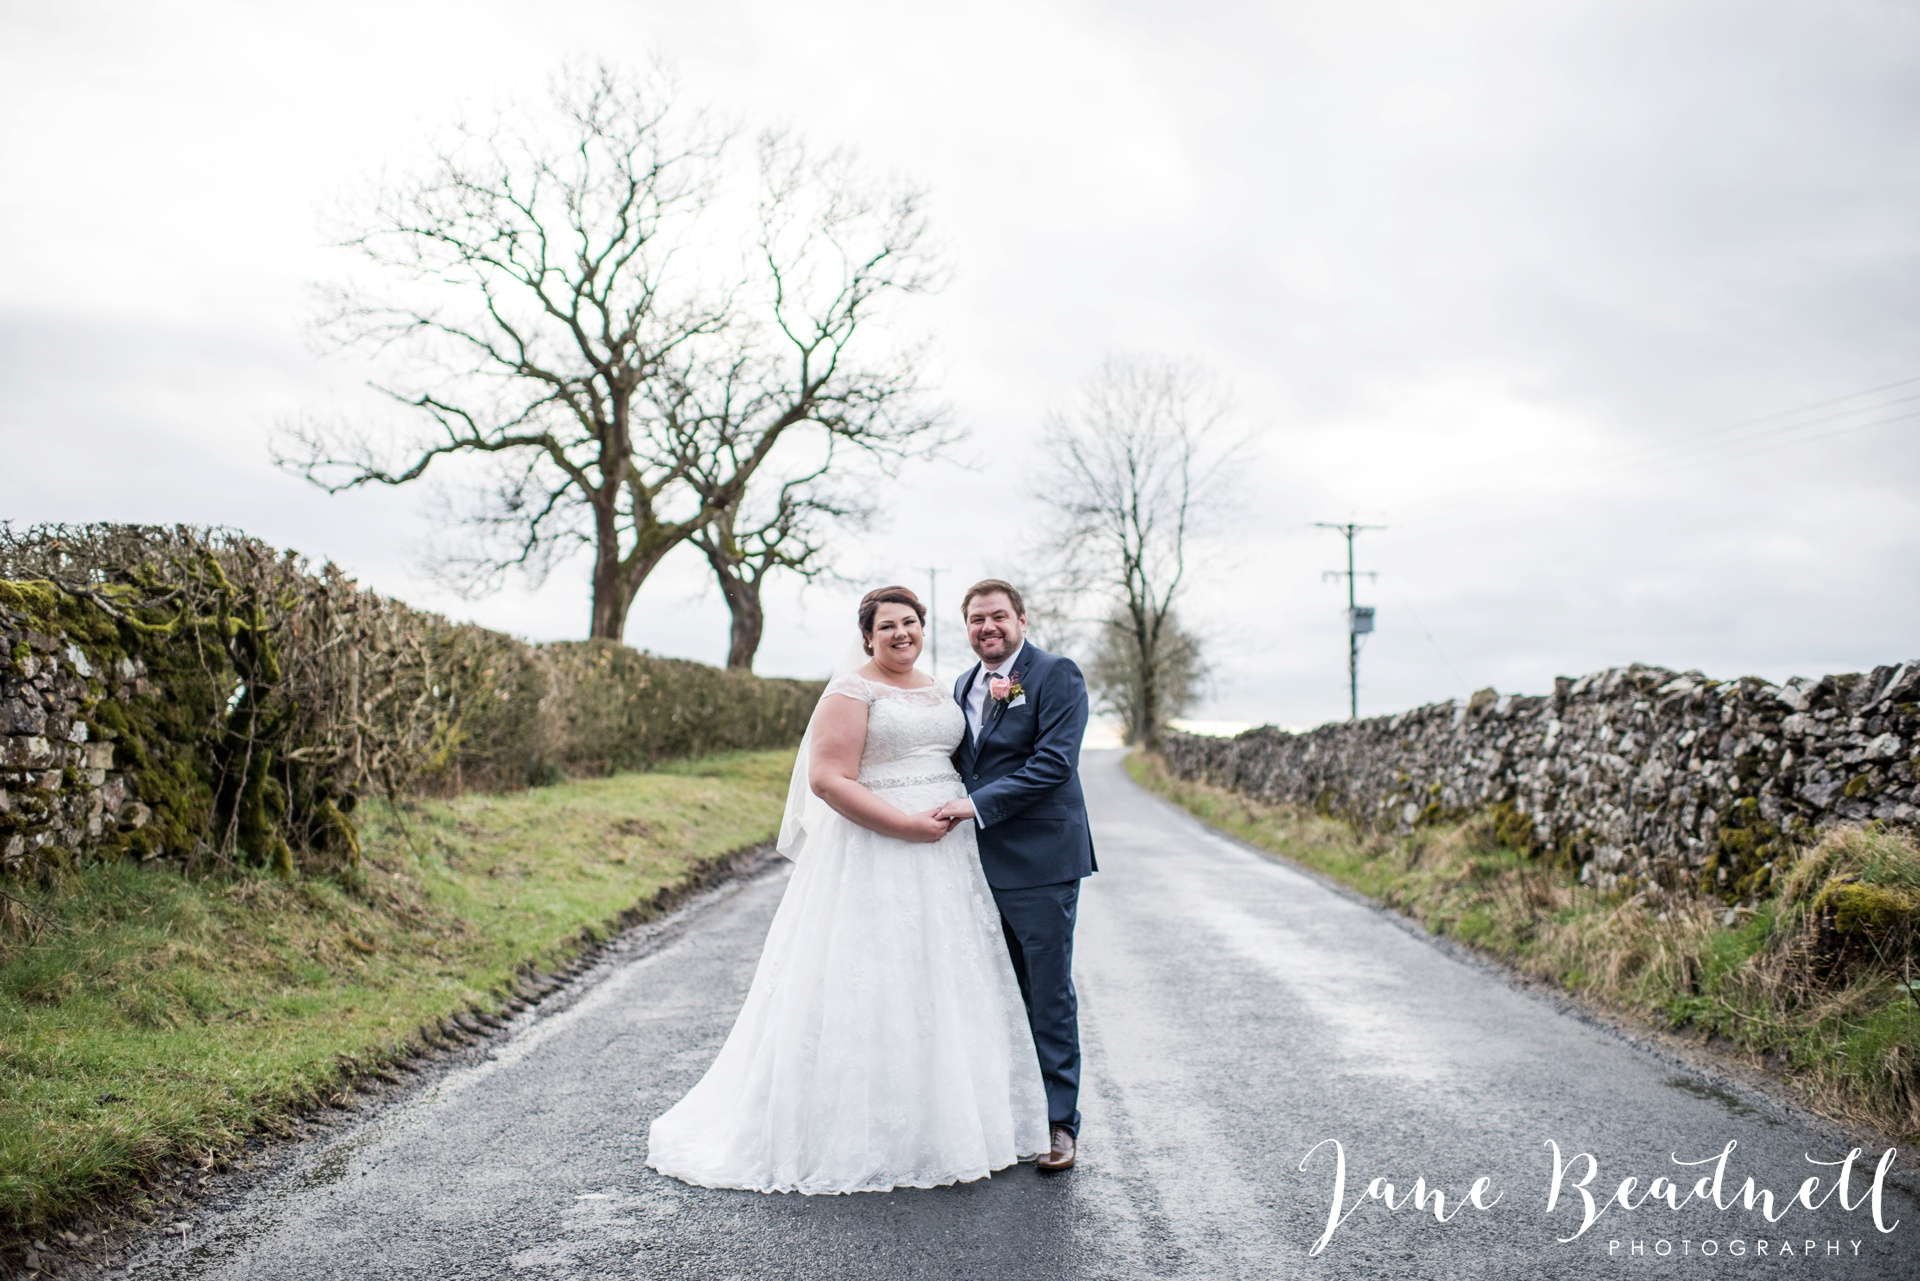 Cracoe Village Hall Wedding Photography by Jane Beadnell Photography fine art wedding photographer Yorkshire_0032